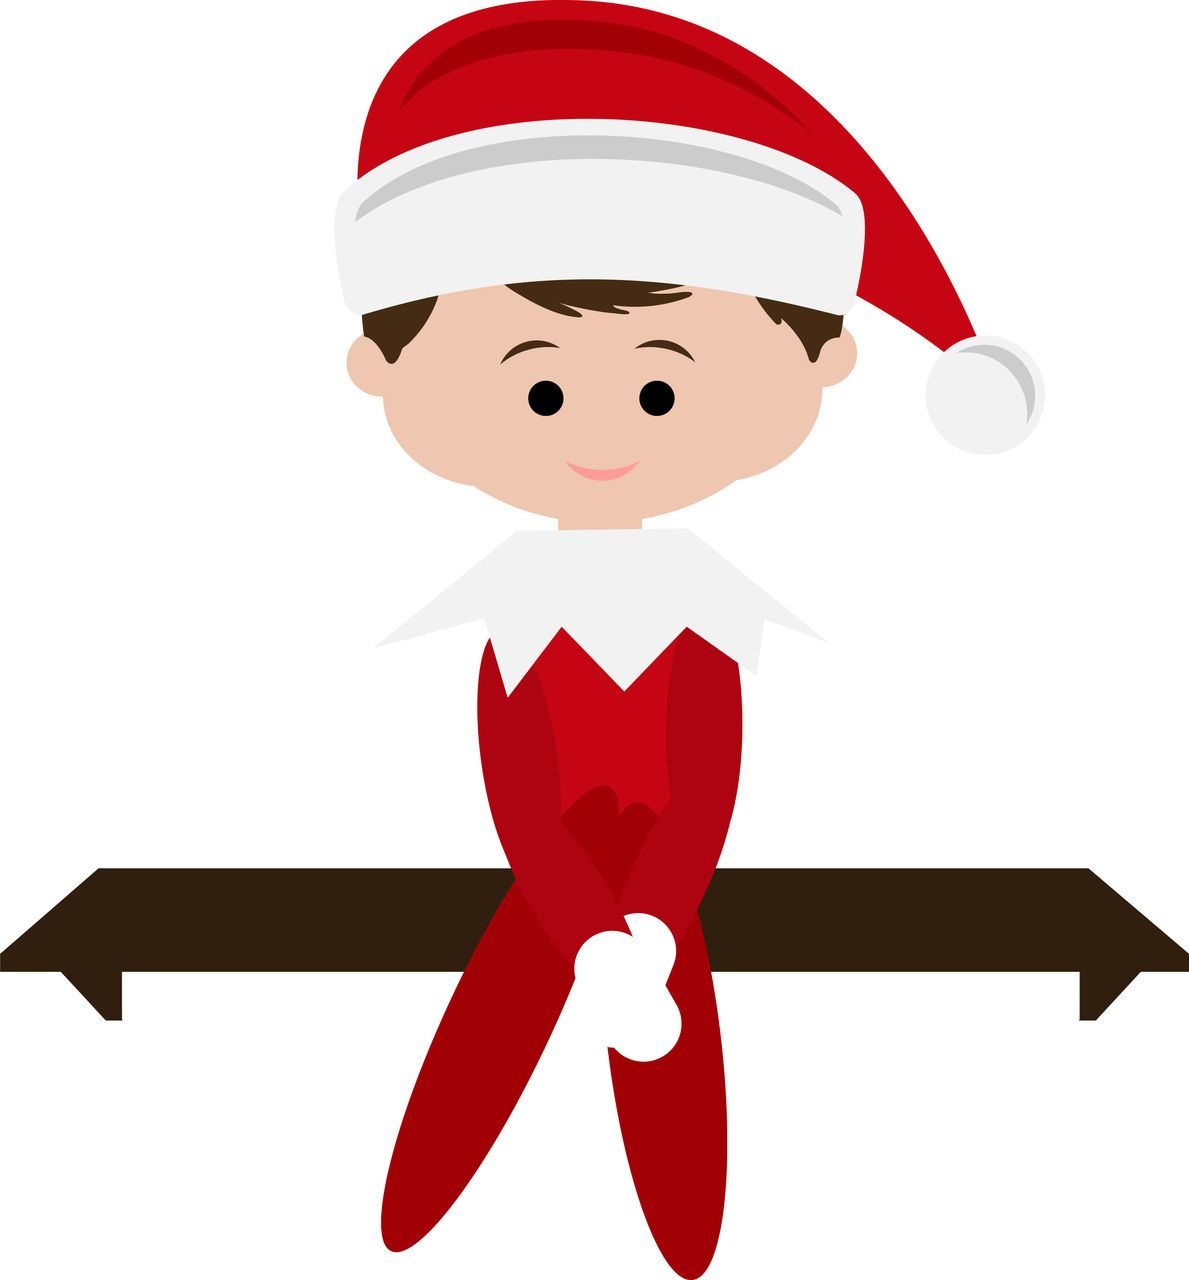 Elf on the shelf plugging in lights clipart clip art library download elf on the shelf svg - Google Search | silhouette christmas ... clip art library download